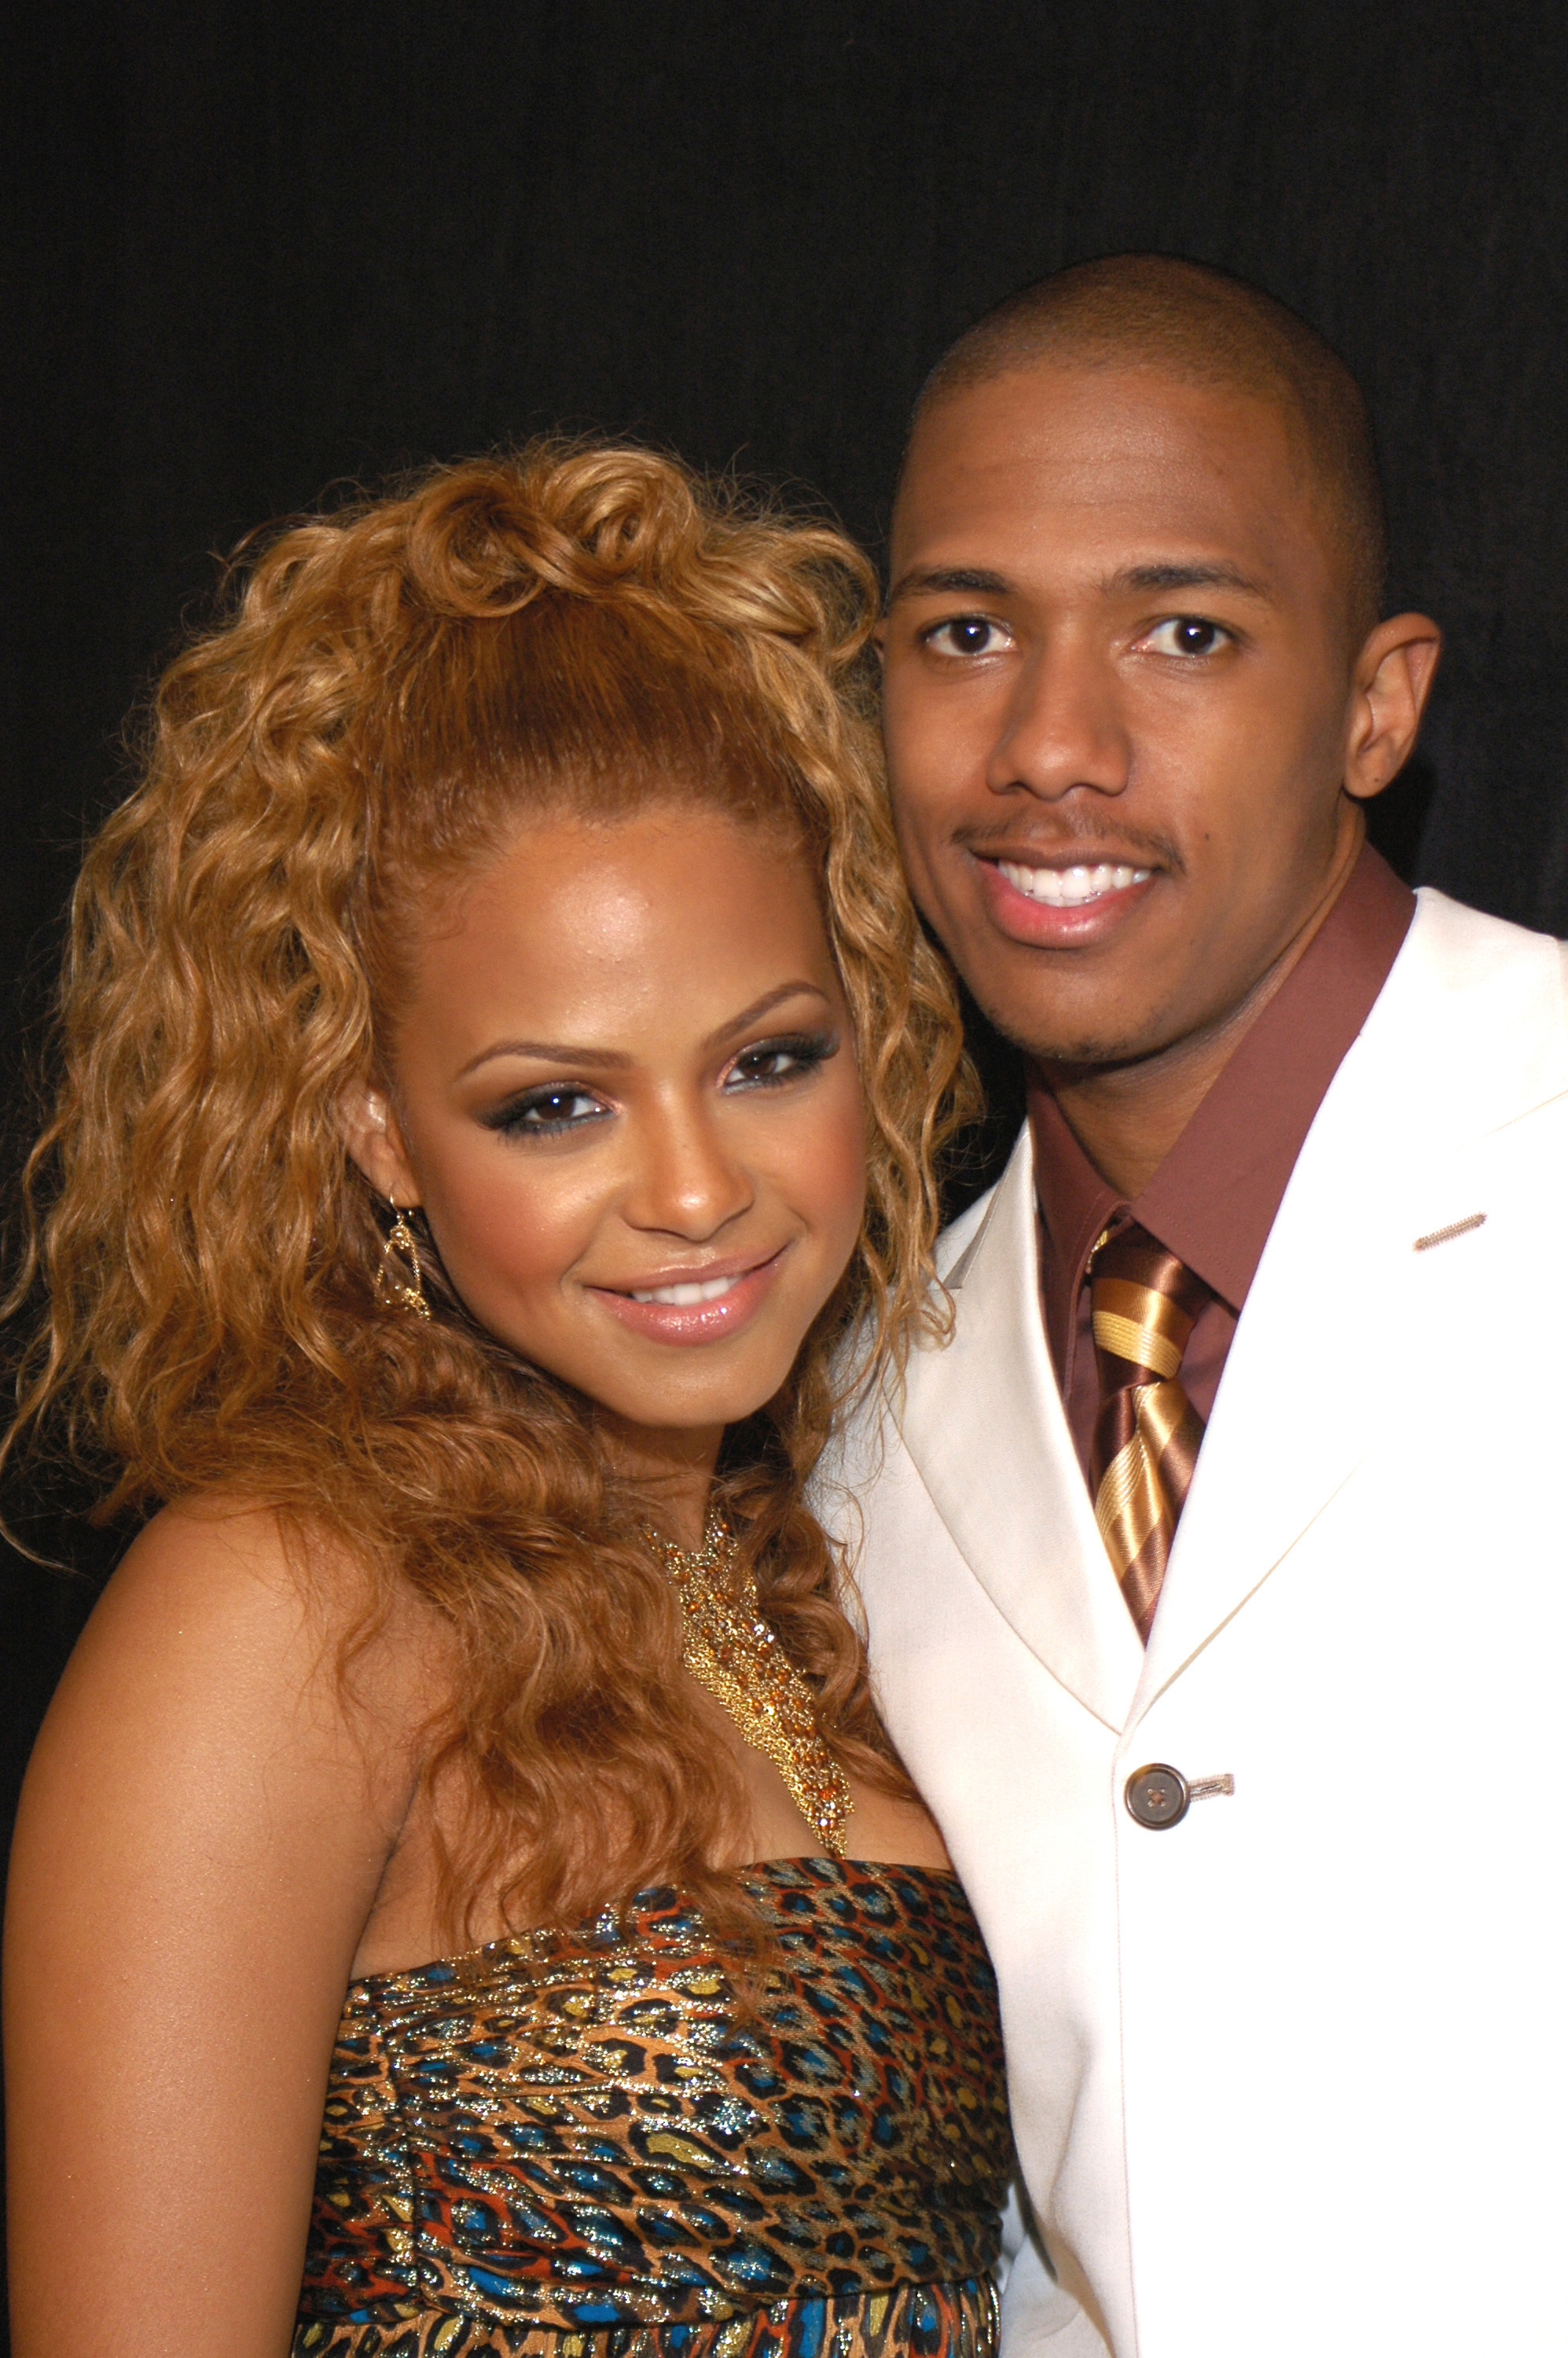 Christina Milian and Nick Cannon attend the 19th Annual Soul Train Awards at Paramount Studios in Hollywood on Feb. 28, 2005.